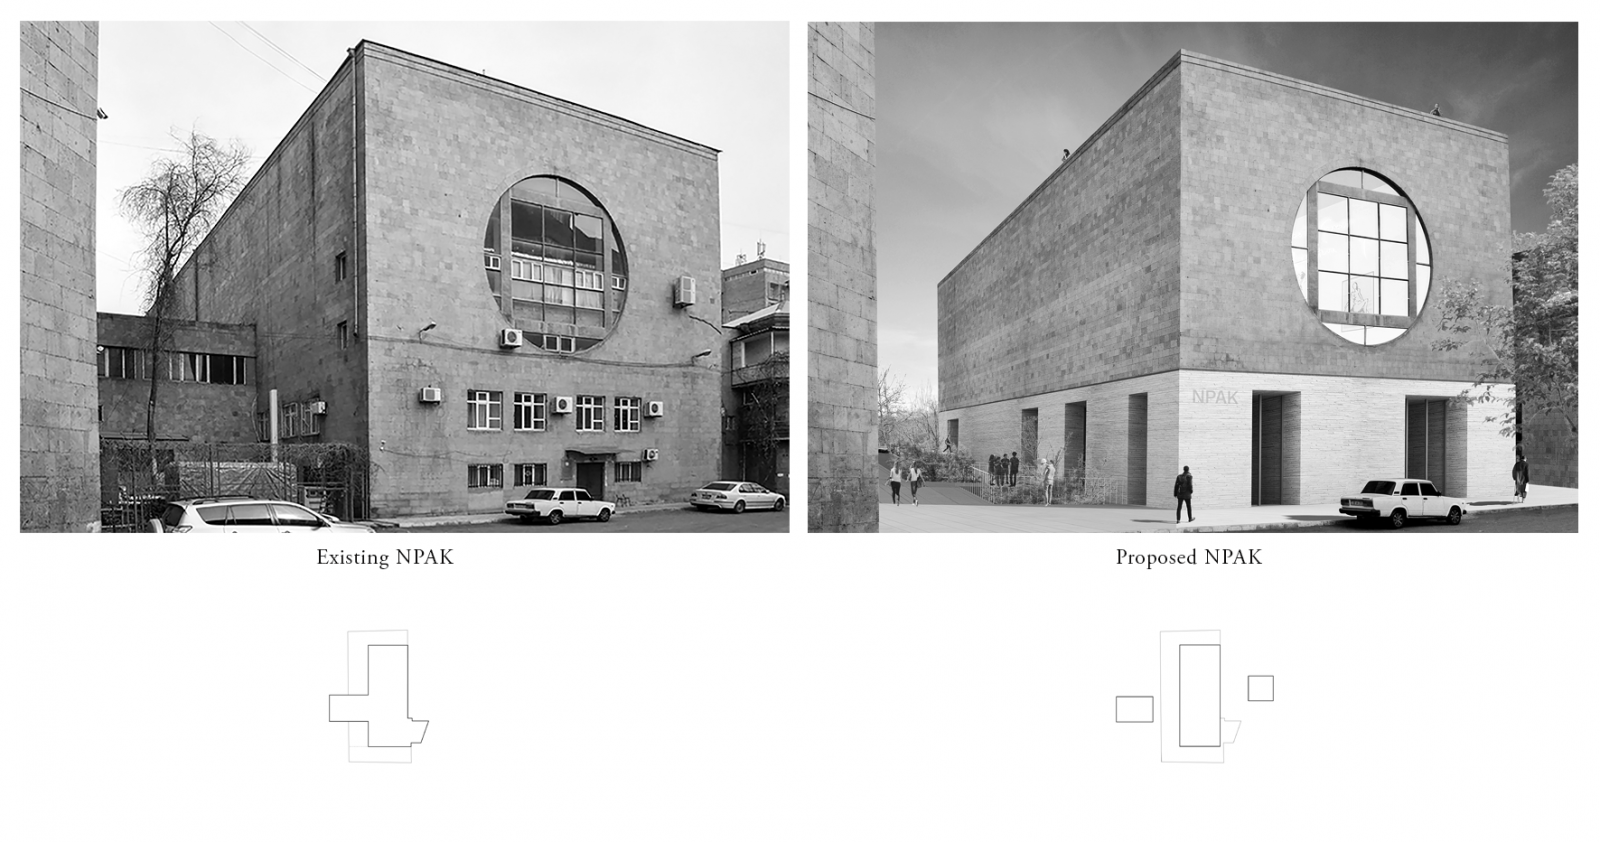 To the left is a view of NPAK as it is today; to the right, the proposal (Courtesy of Garine Boghossian, Garen Boghossian, Elisa Bosi, Gabriele Paravati)